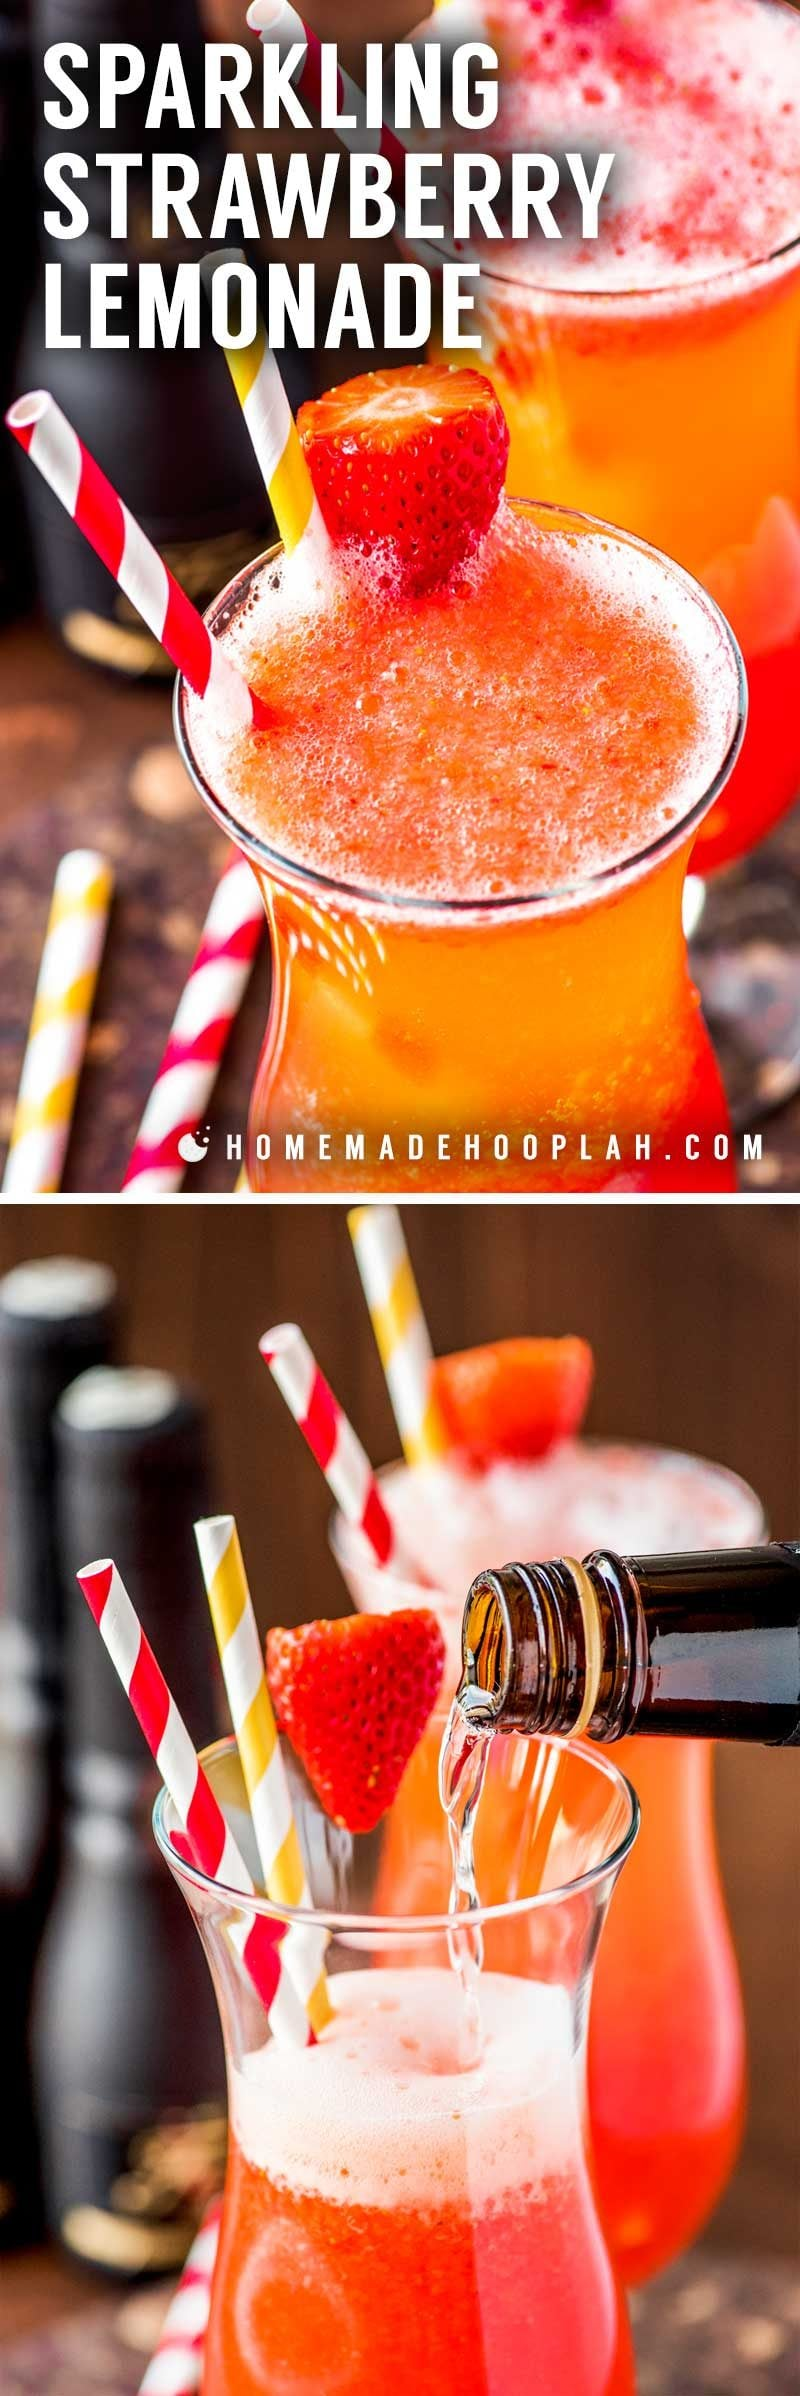 The best homemade strawberry lemonade recipe.